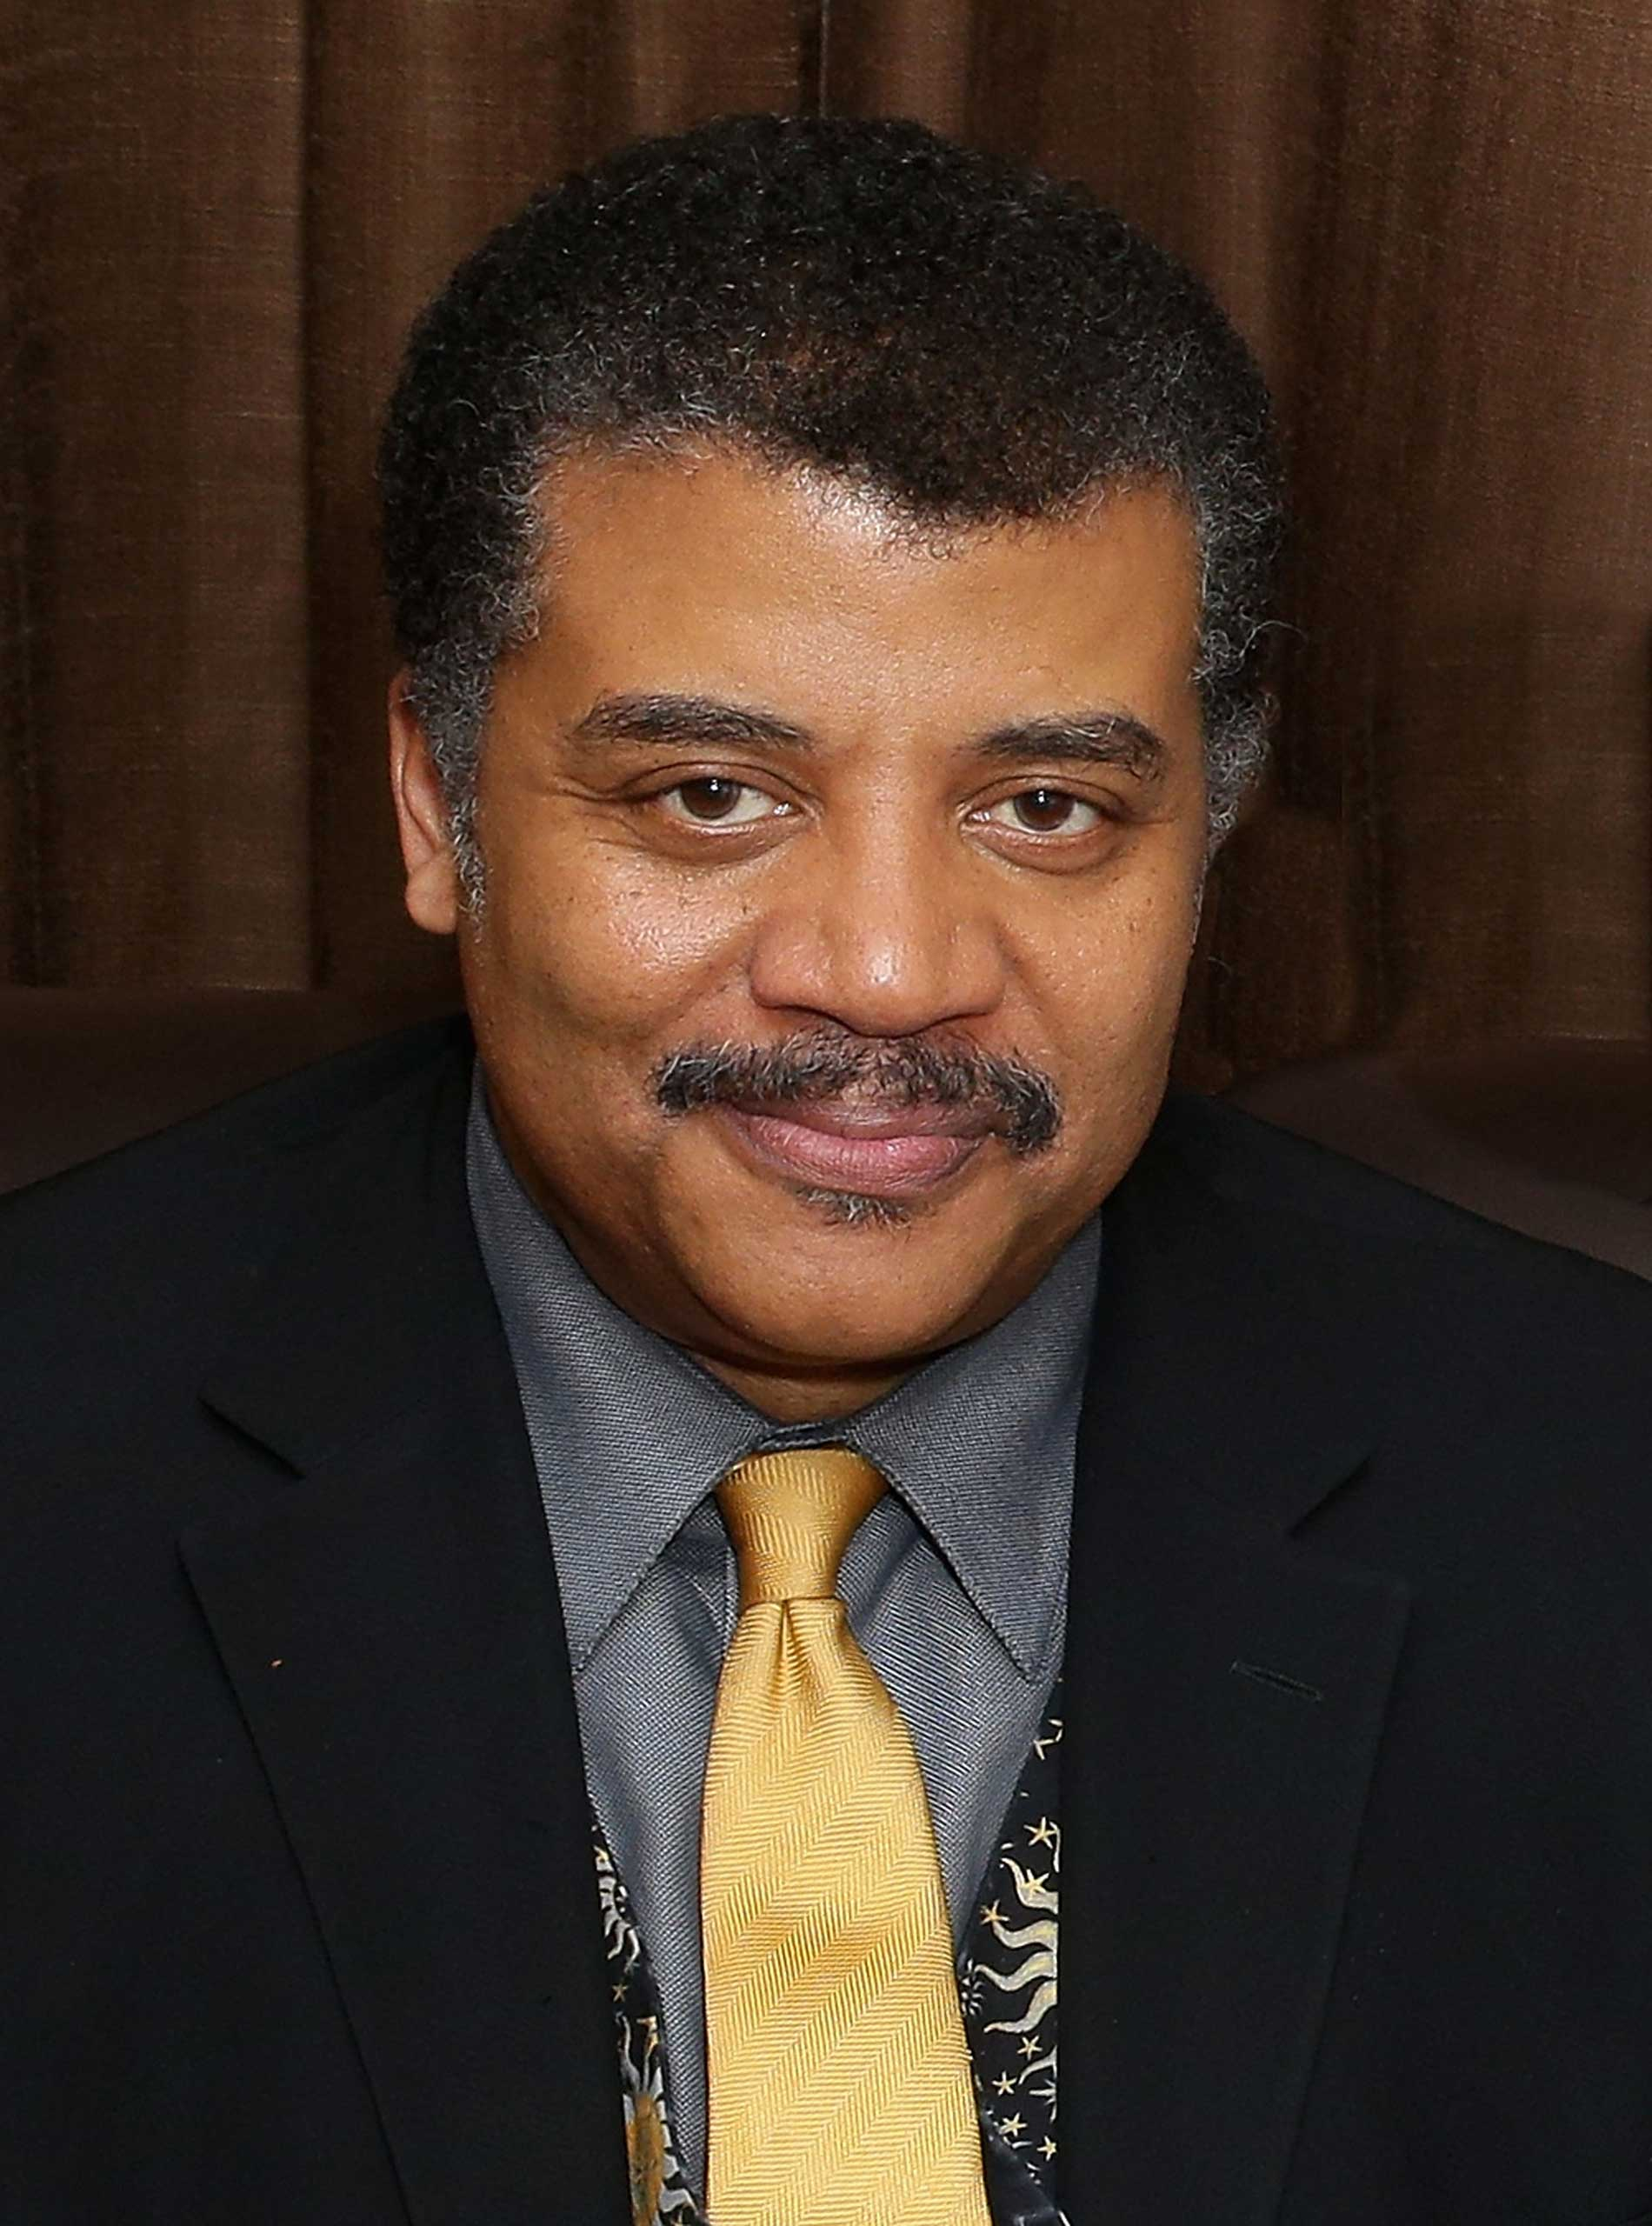 Physicist/TV host Dr. Neil deGrasse Tyson in New York City, June 5, 2014.